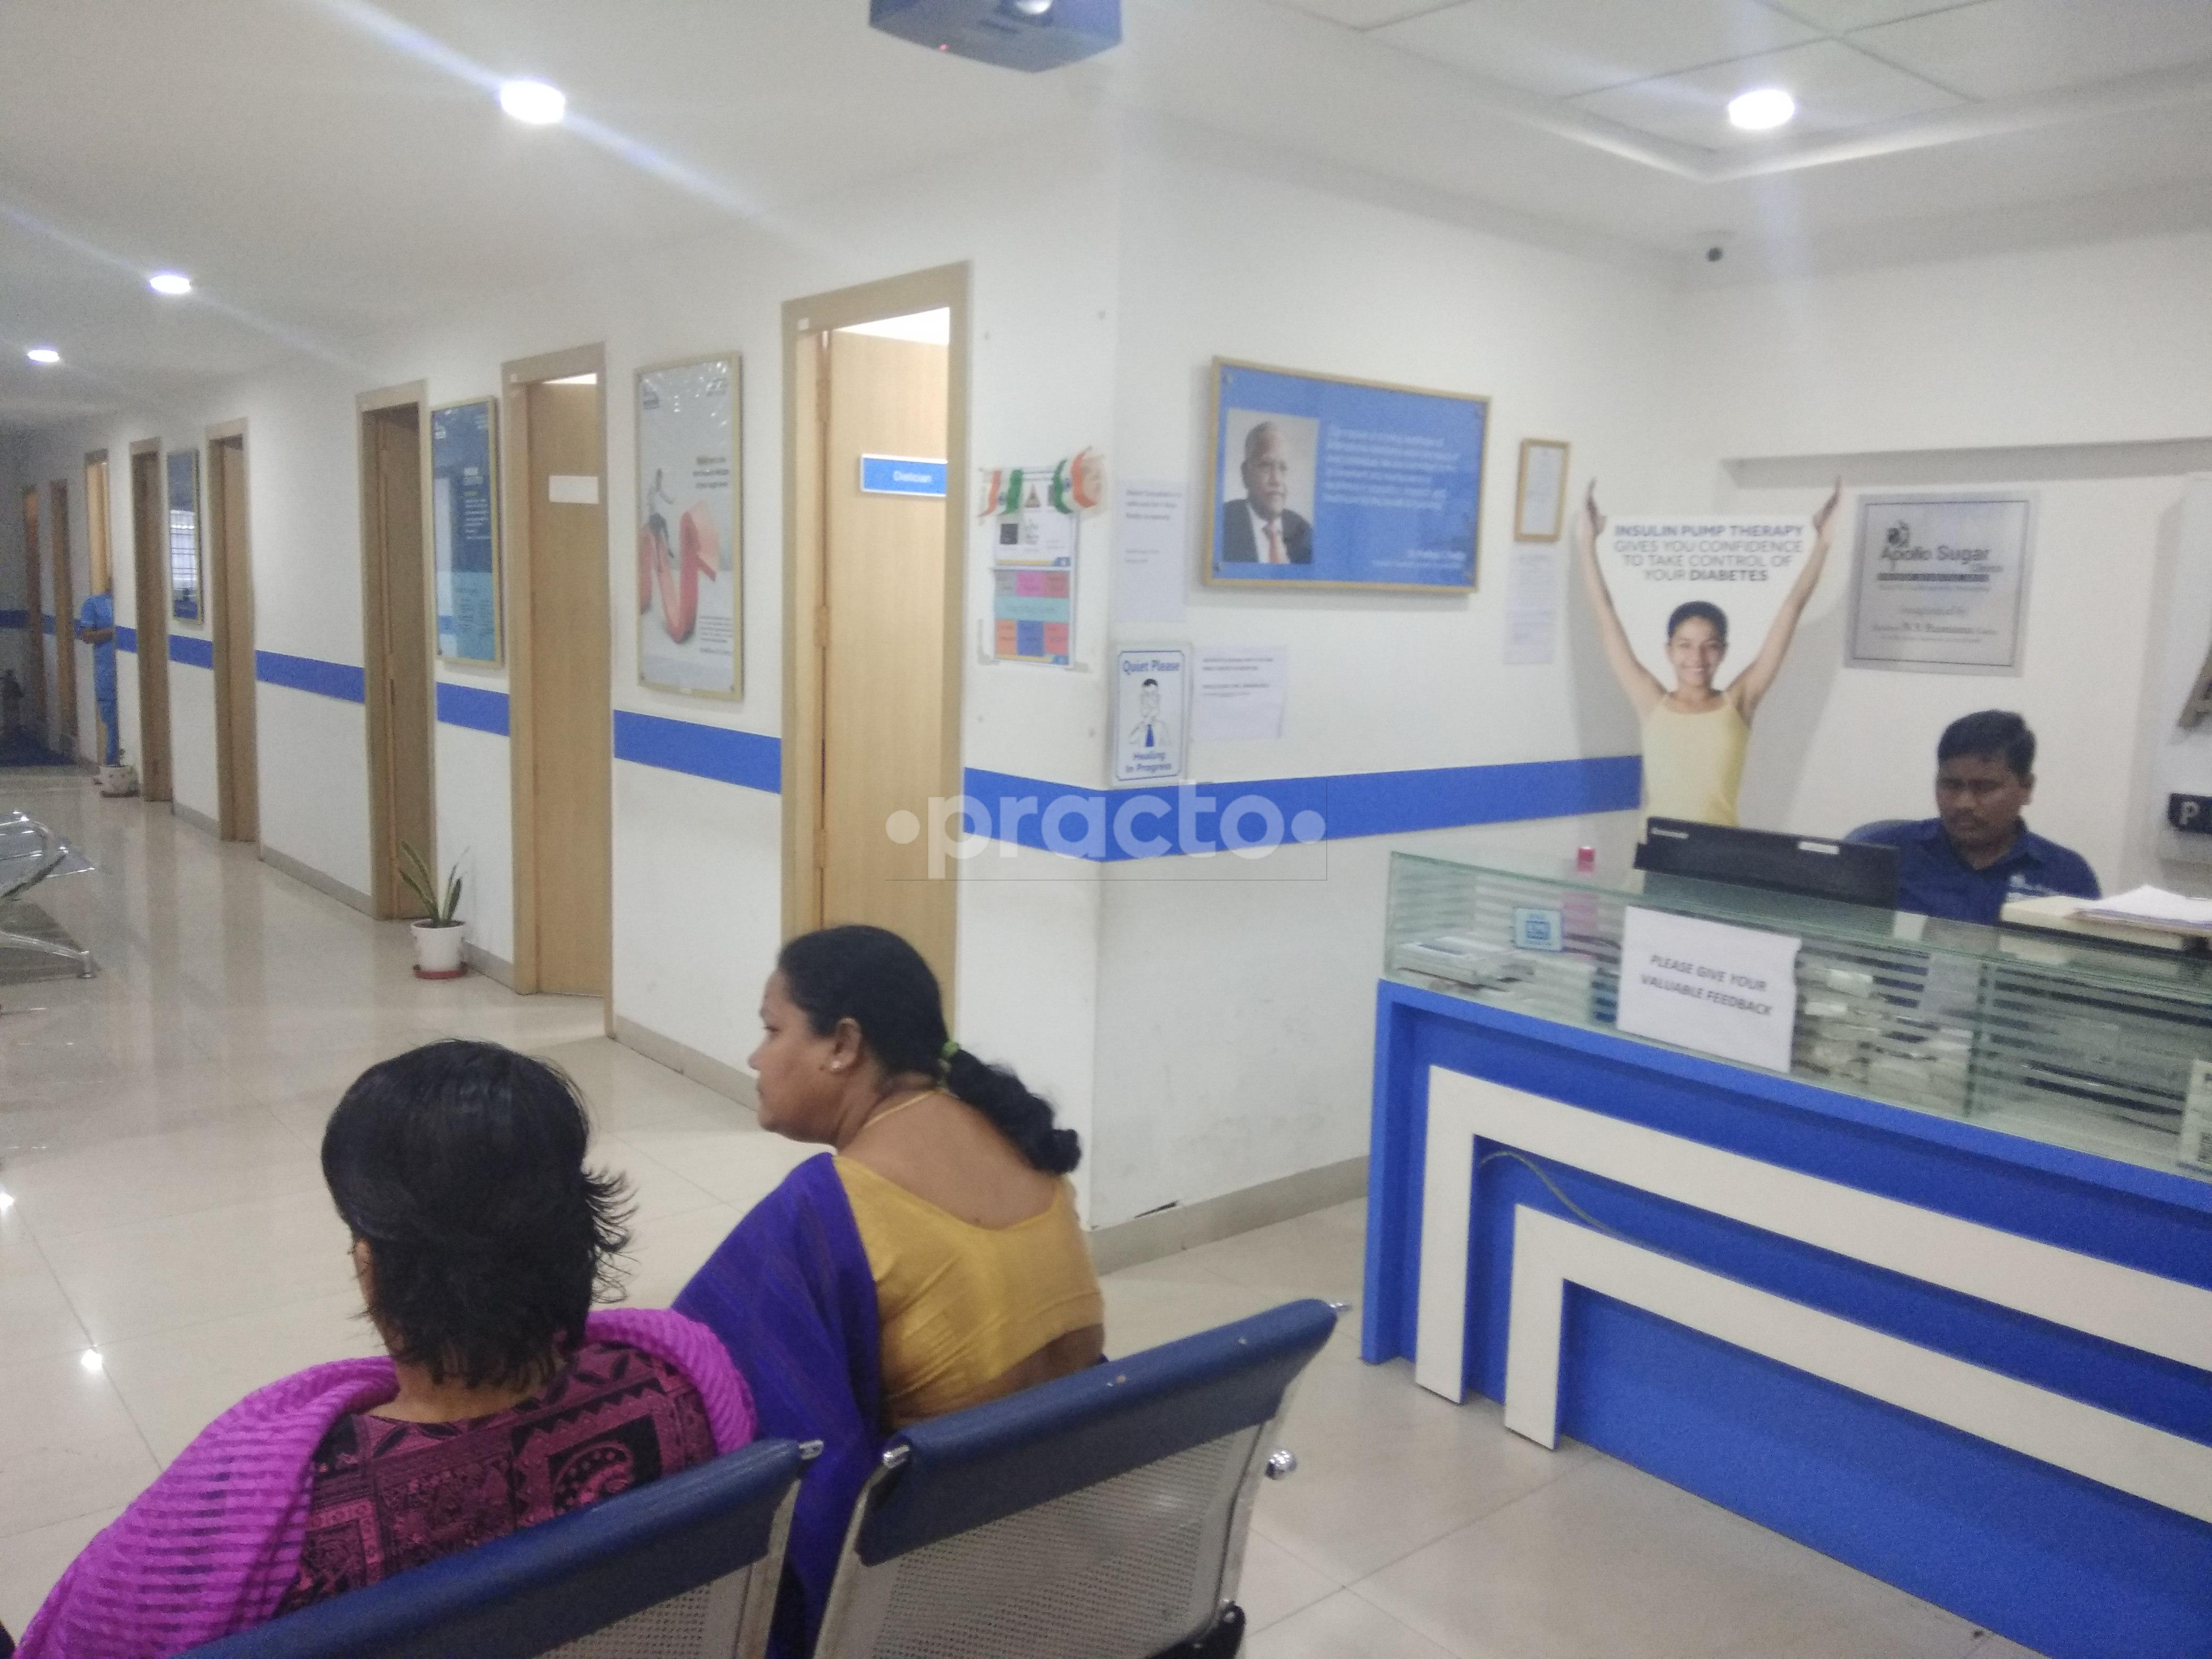 Best Clinics in Bhubaneswar - Book Appointment, View Reviews